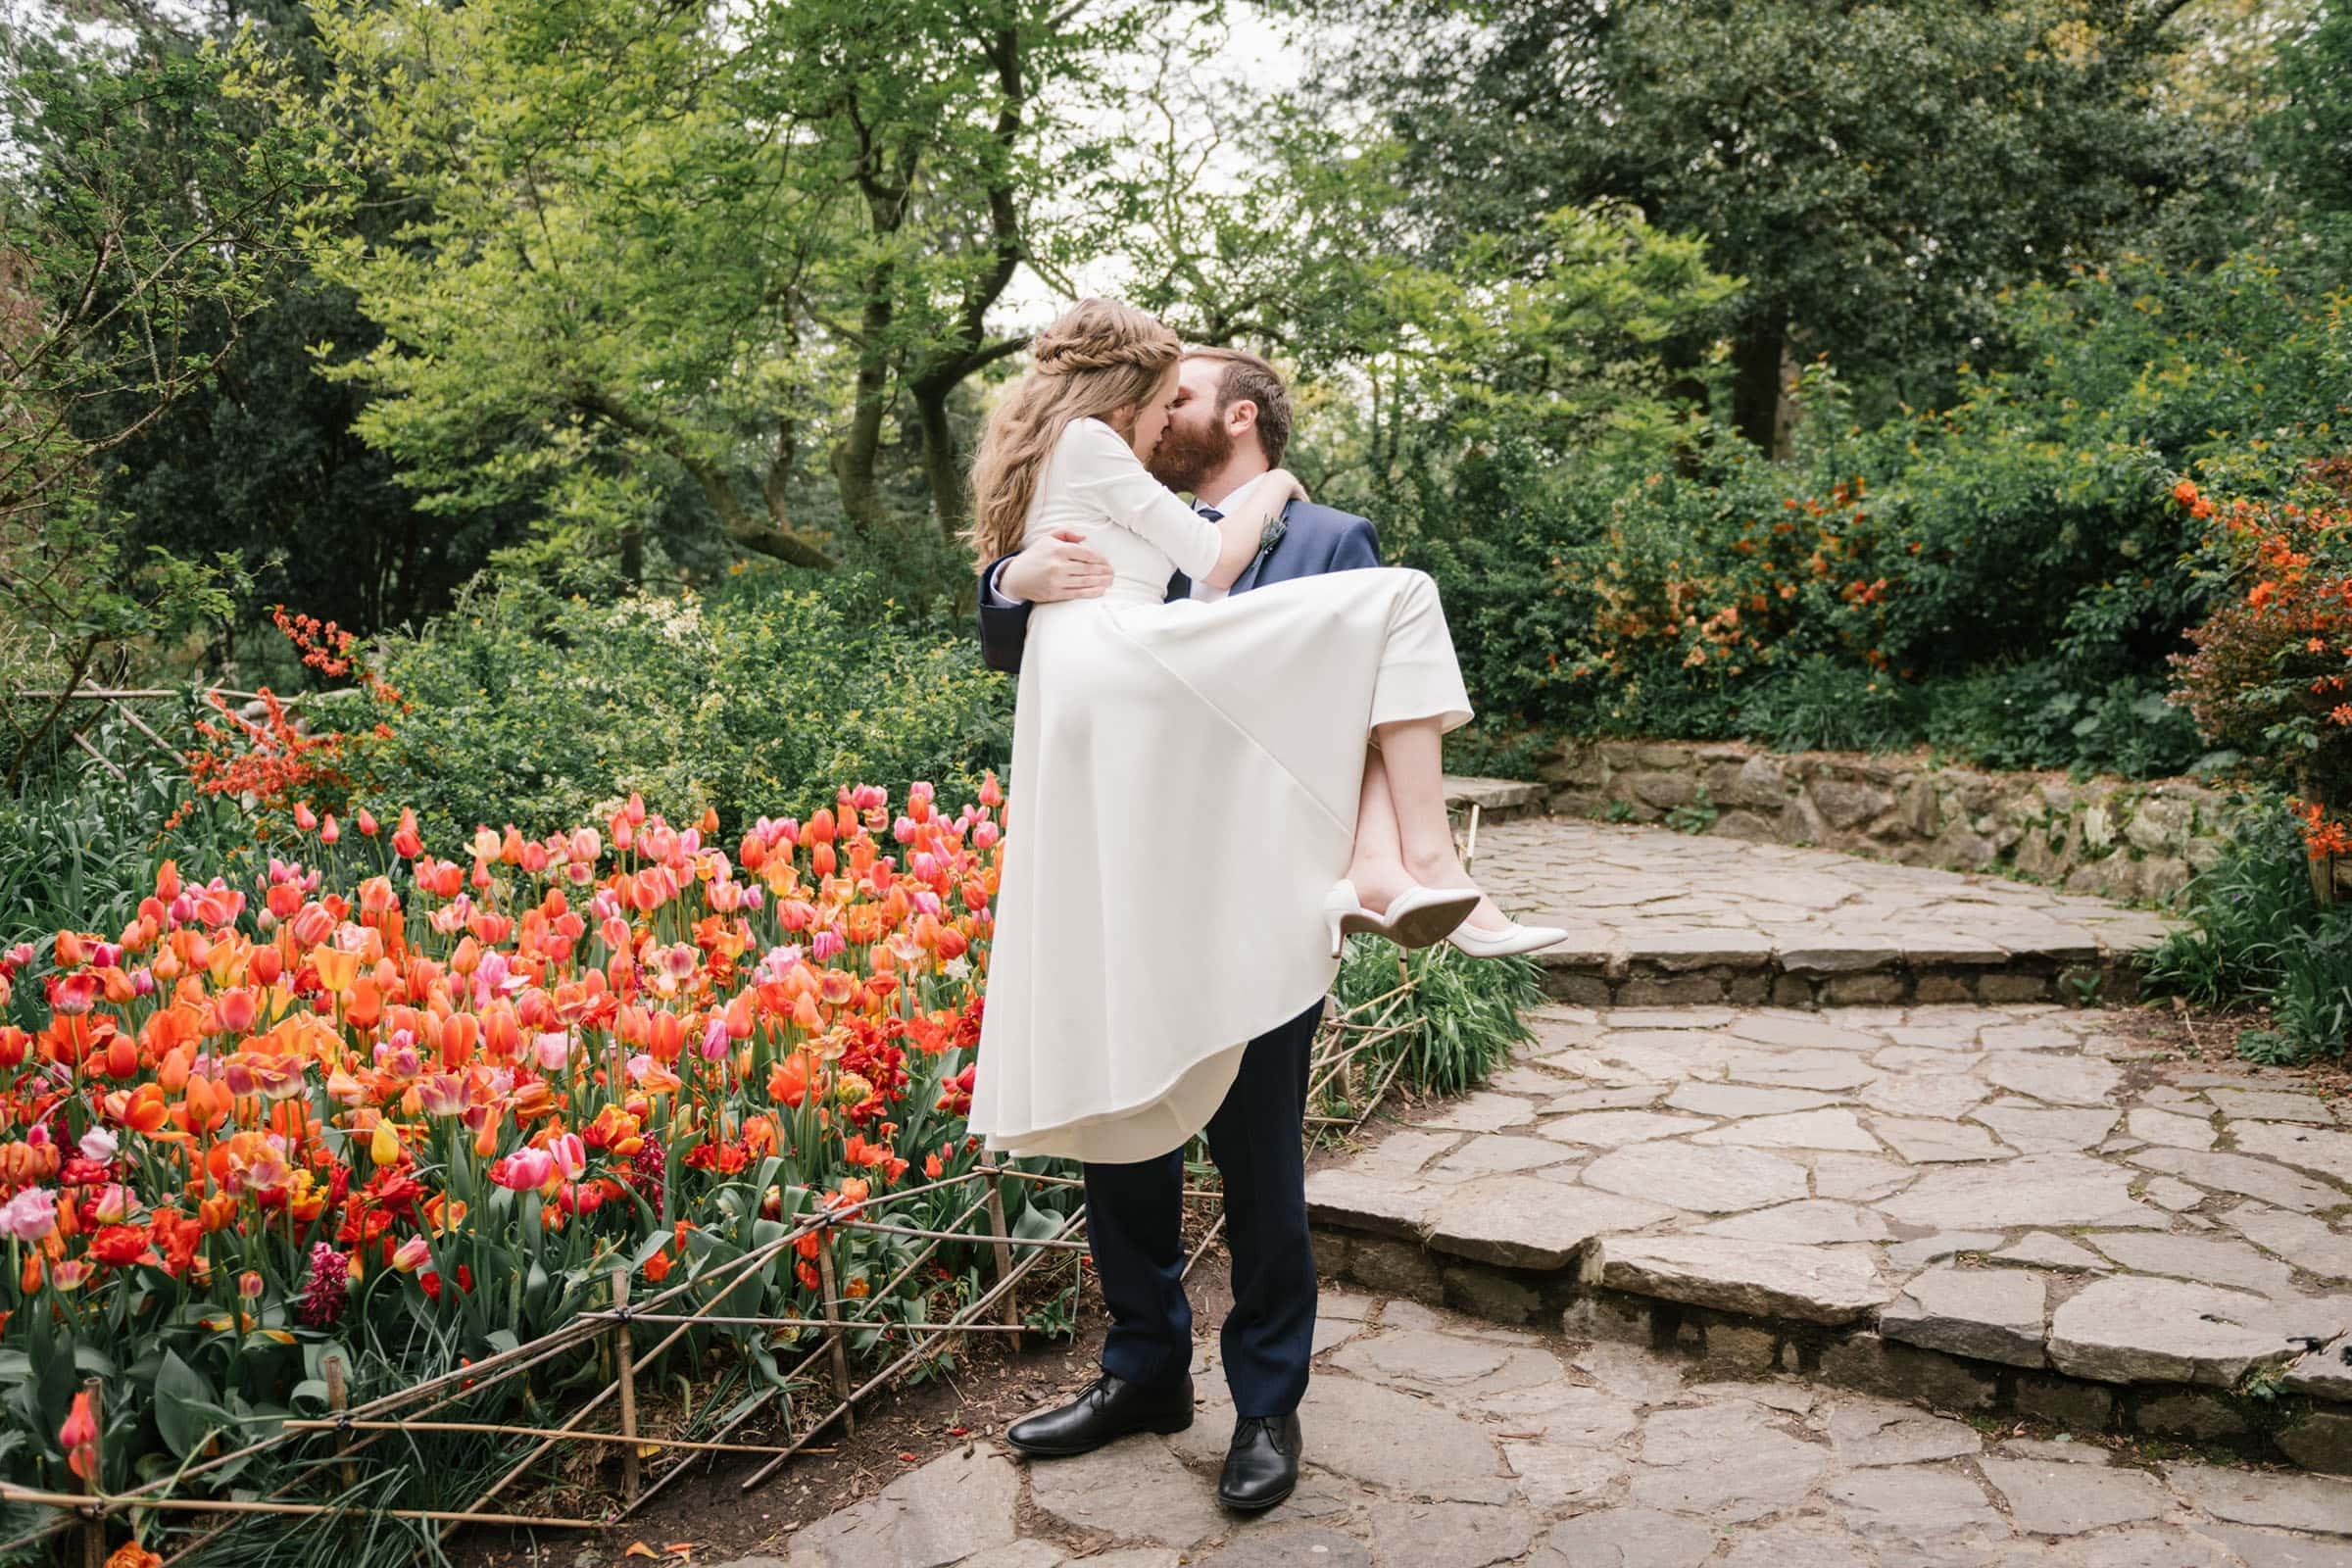 Best Central Park wedding locations in NYC